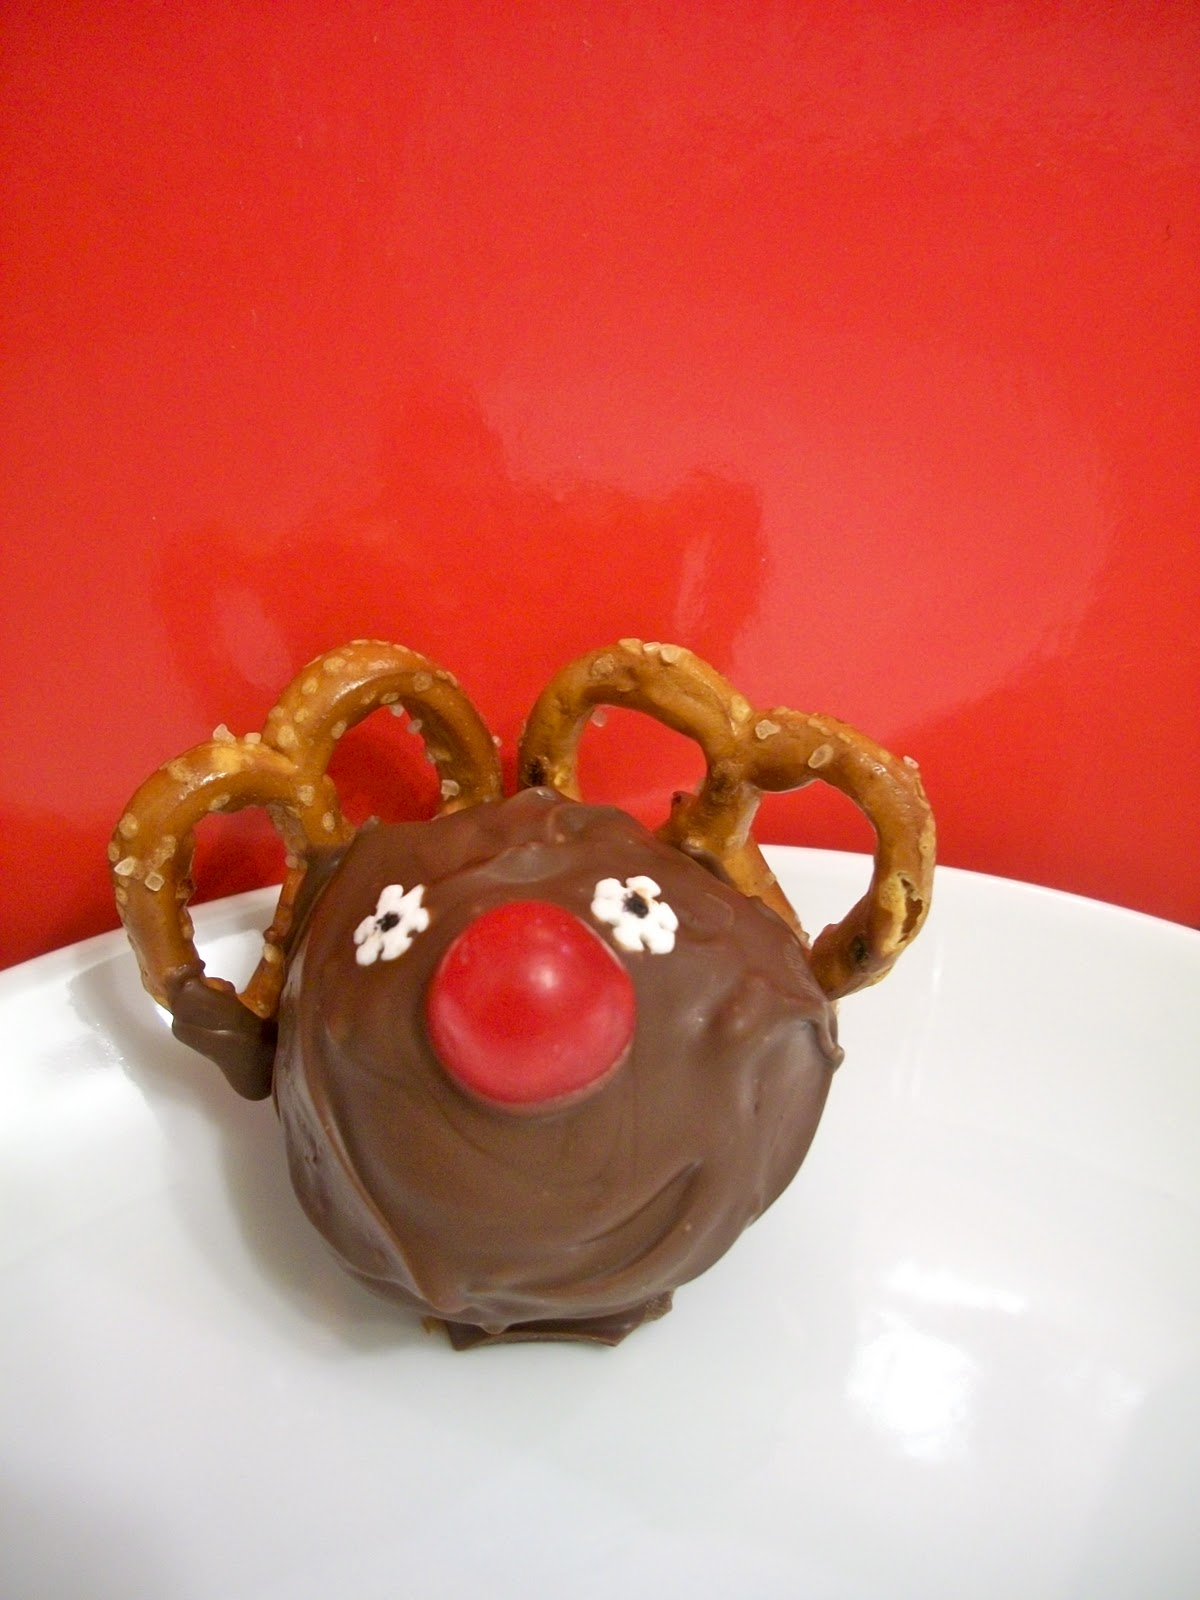 Cake Decorations Chocolate Balls : Brooke Bakes : Christmas Cake Balls (Rudolph and Candy Cane)